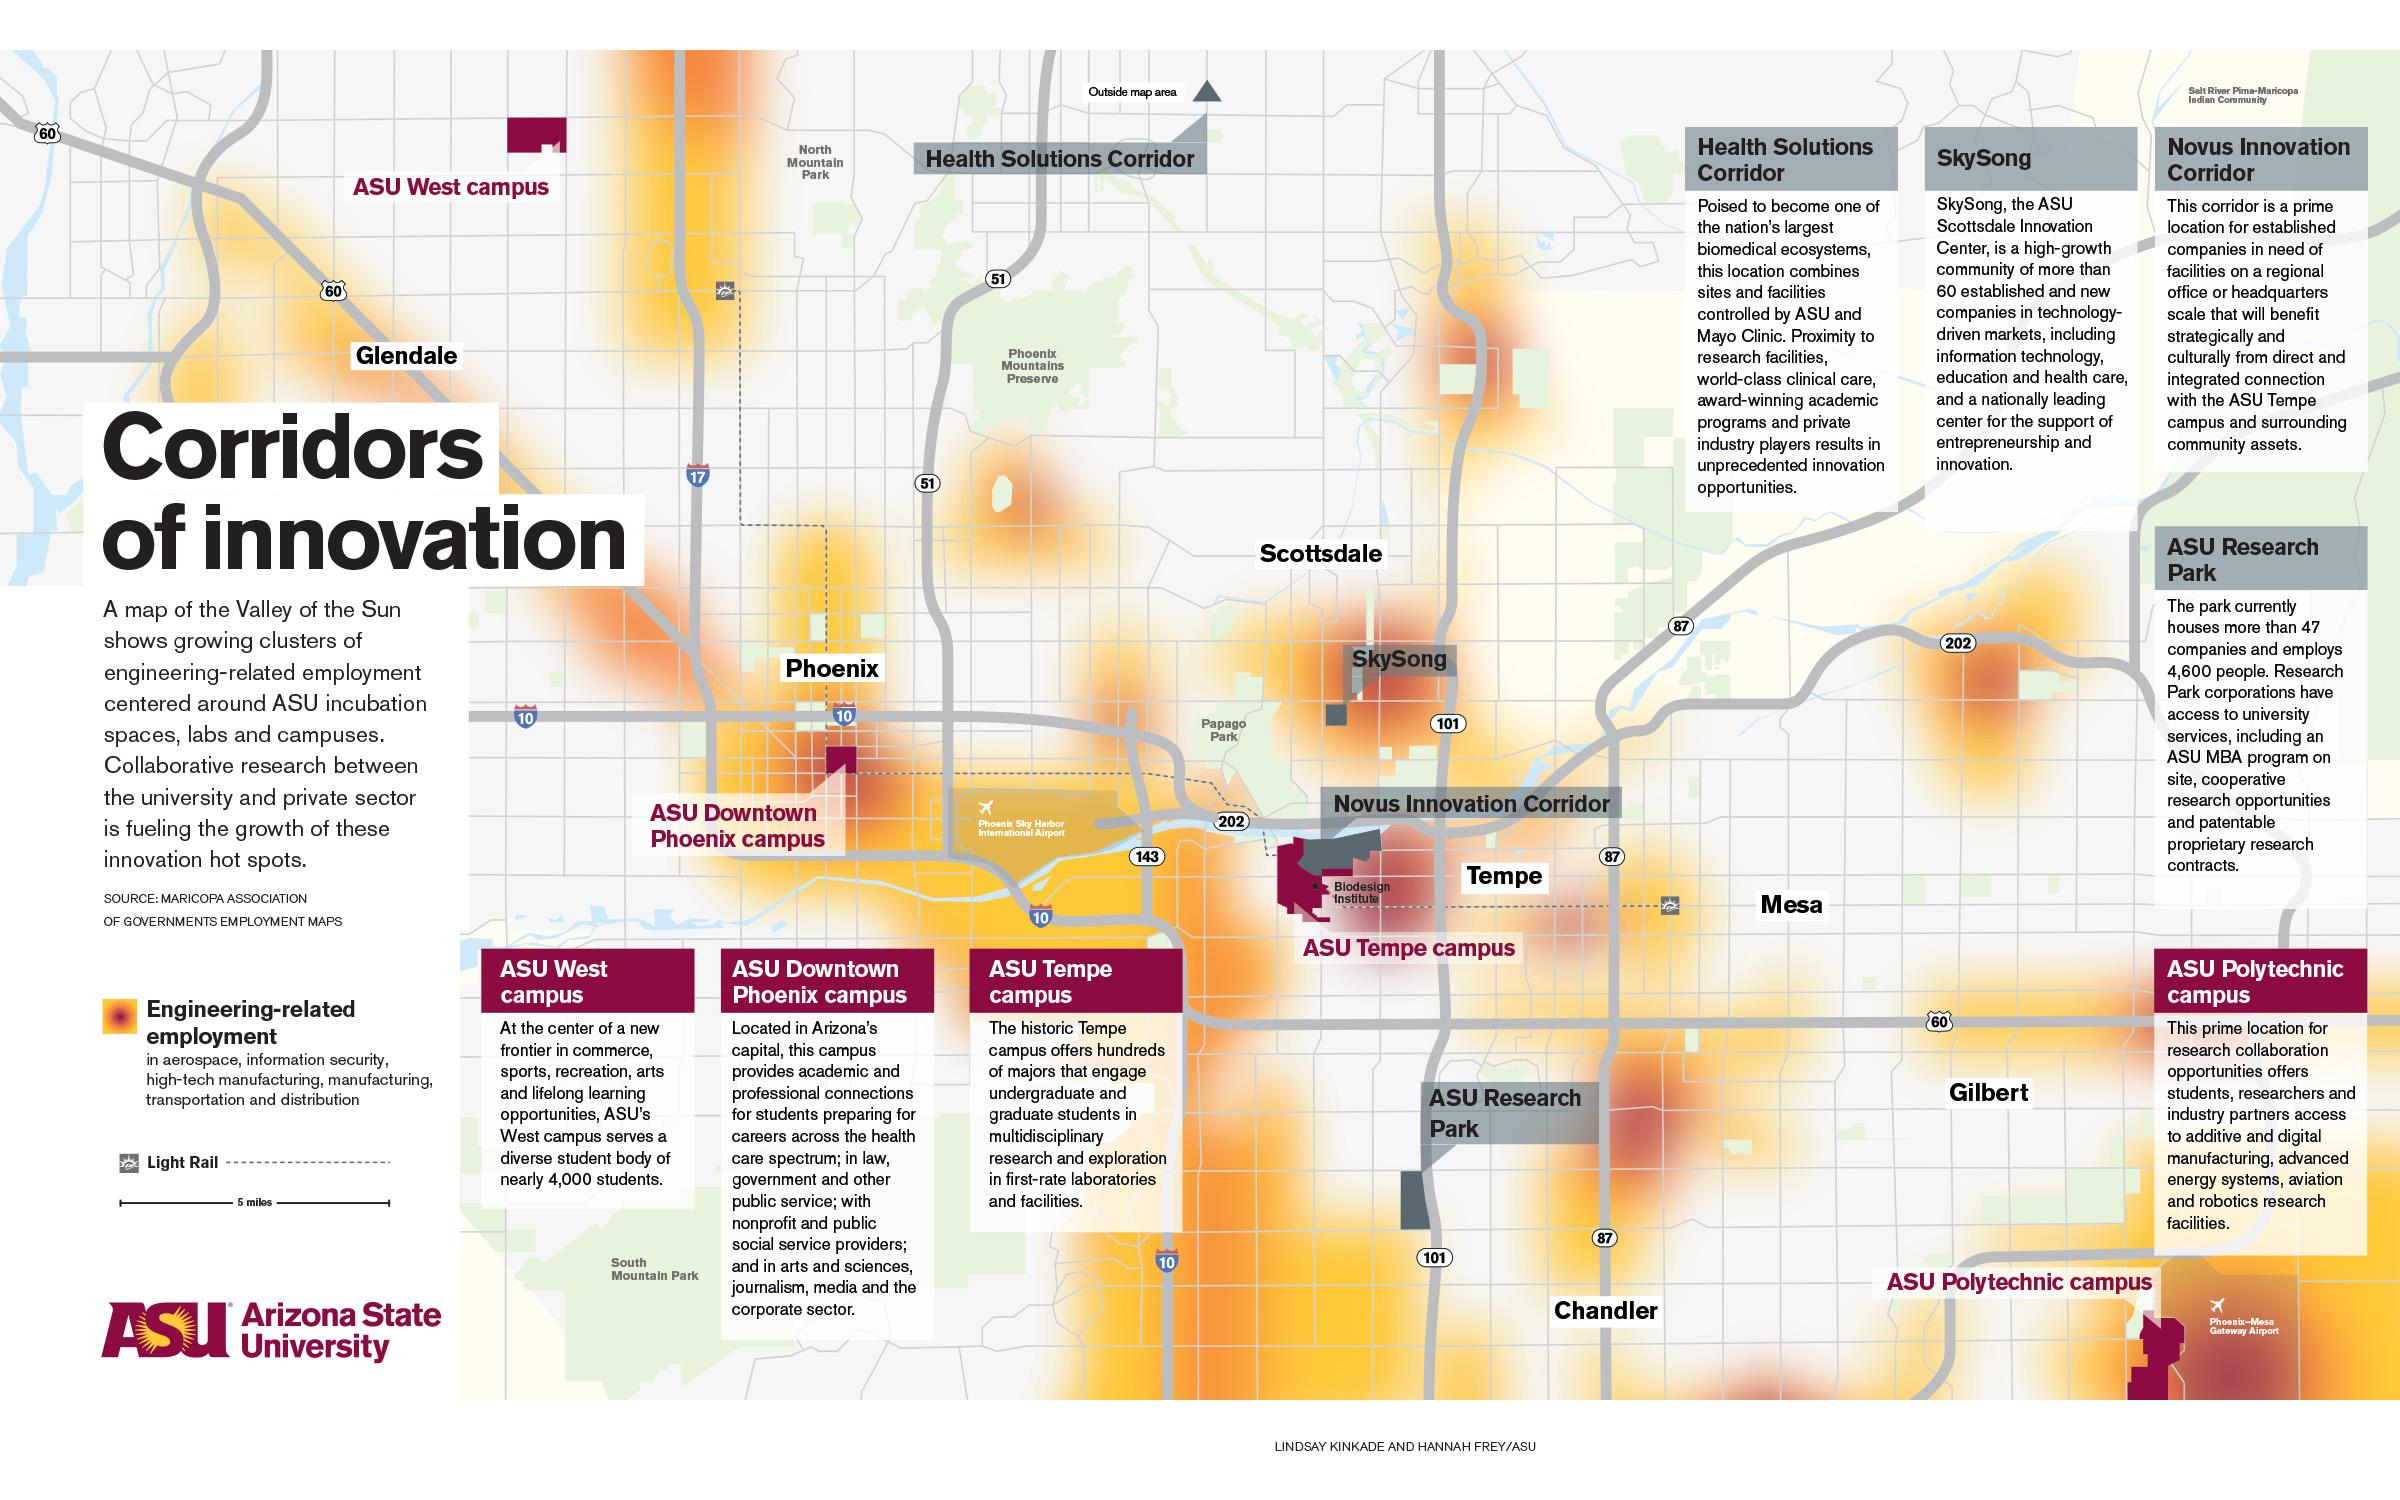 A map of Phoenix showing concentrations of innovation